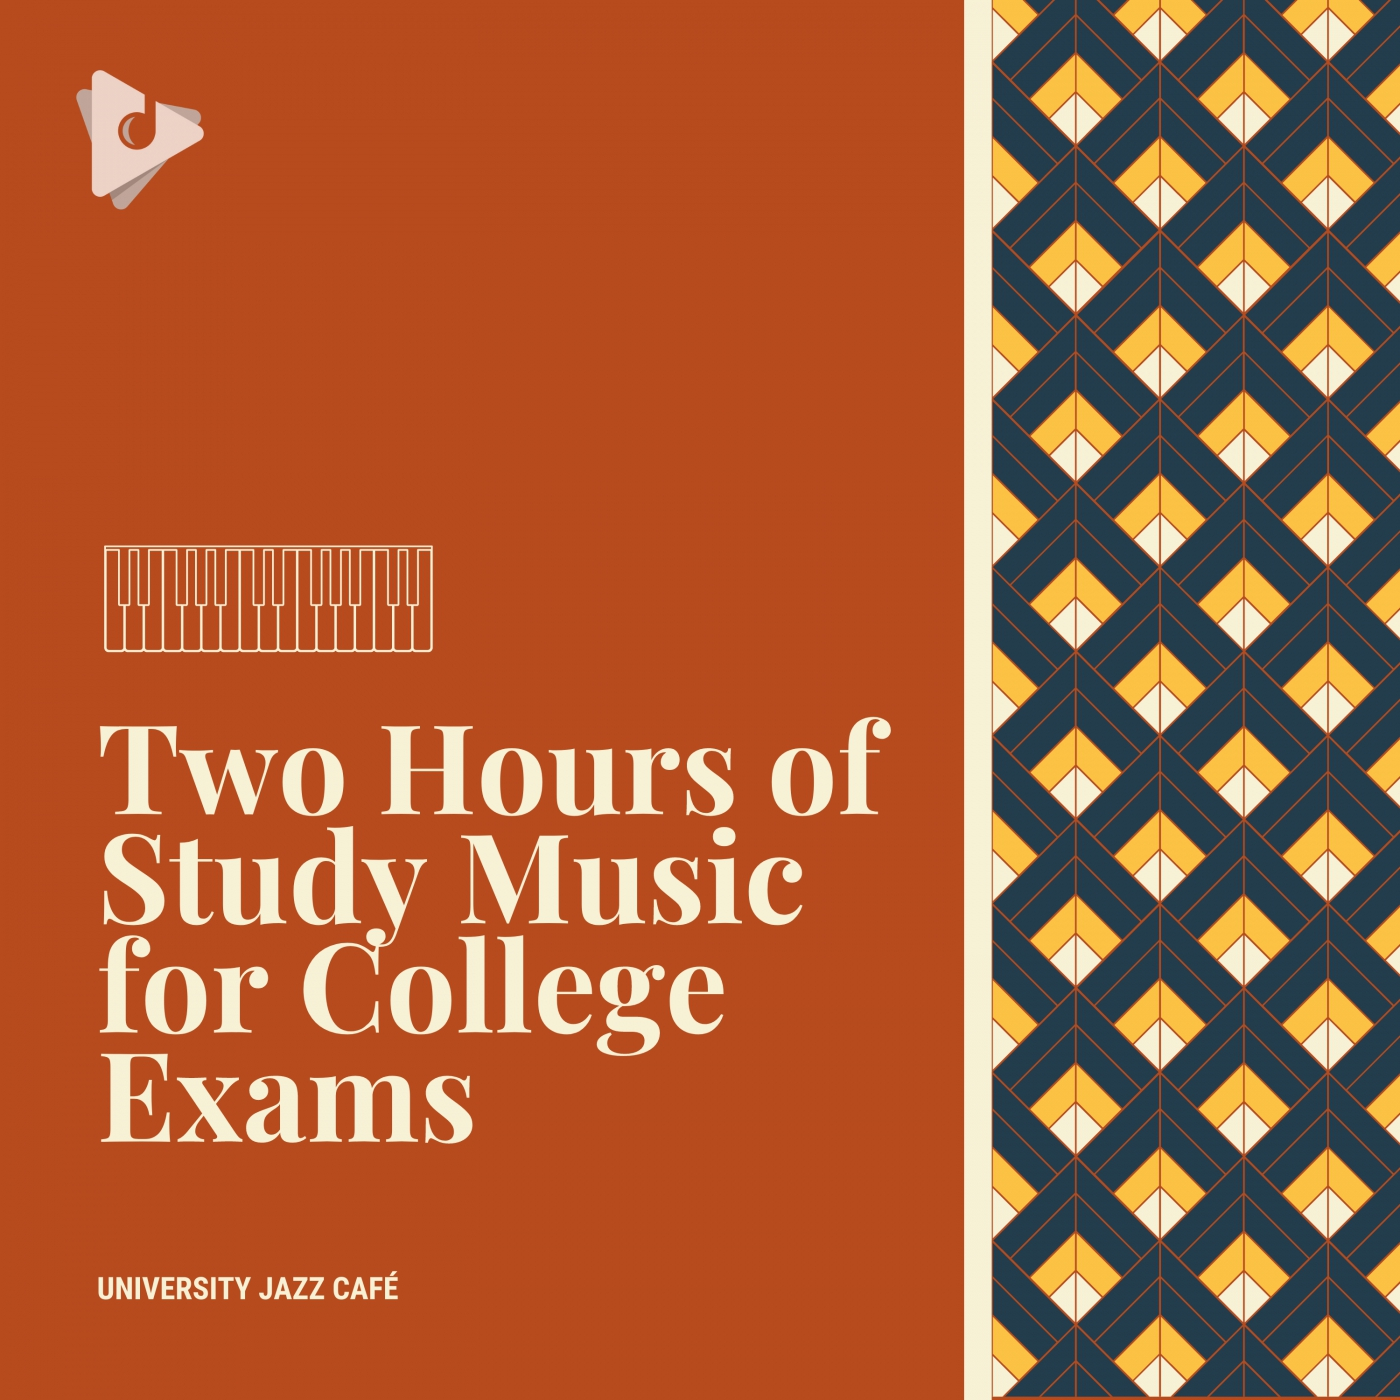 Two Hours of Study Music for College Exams